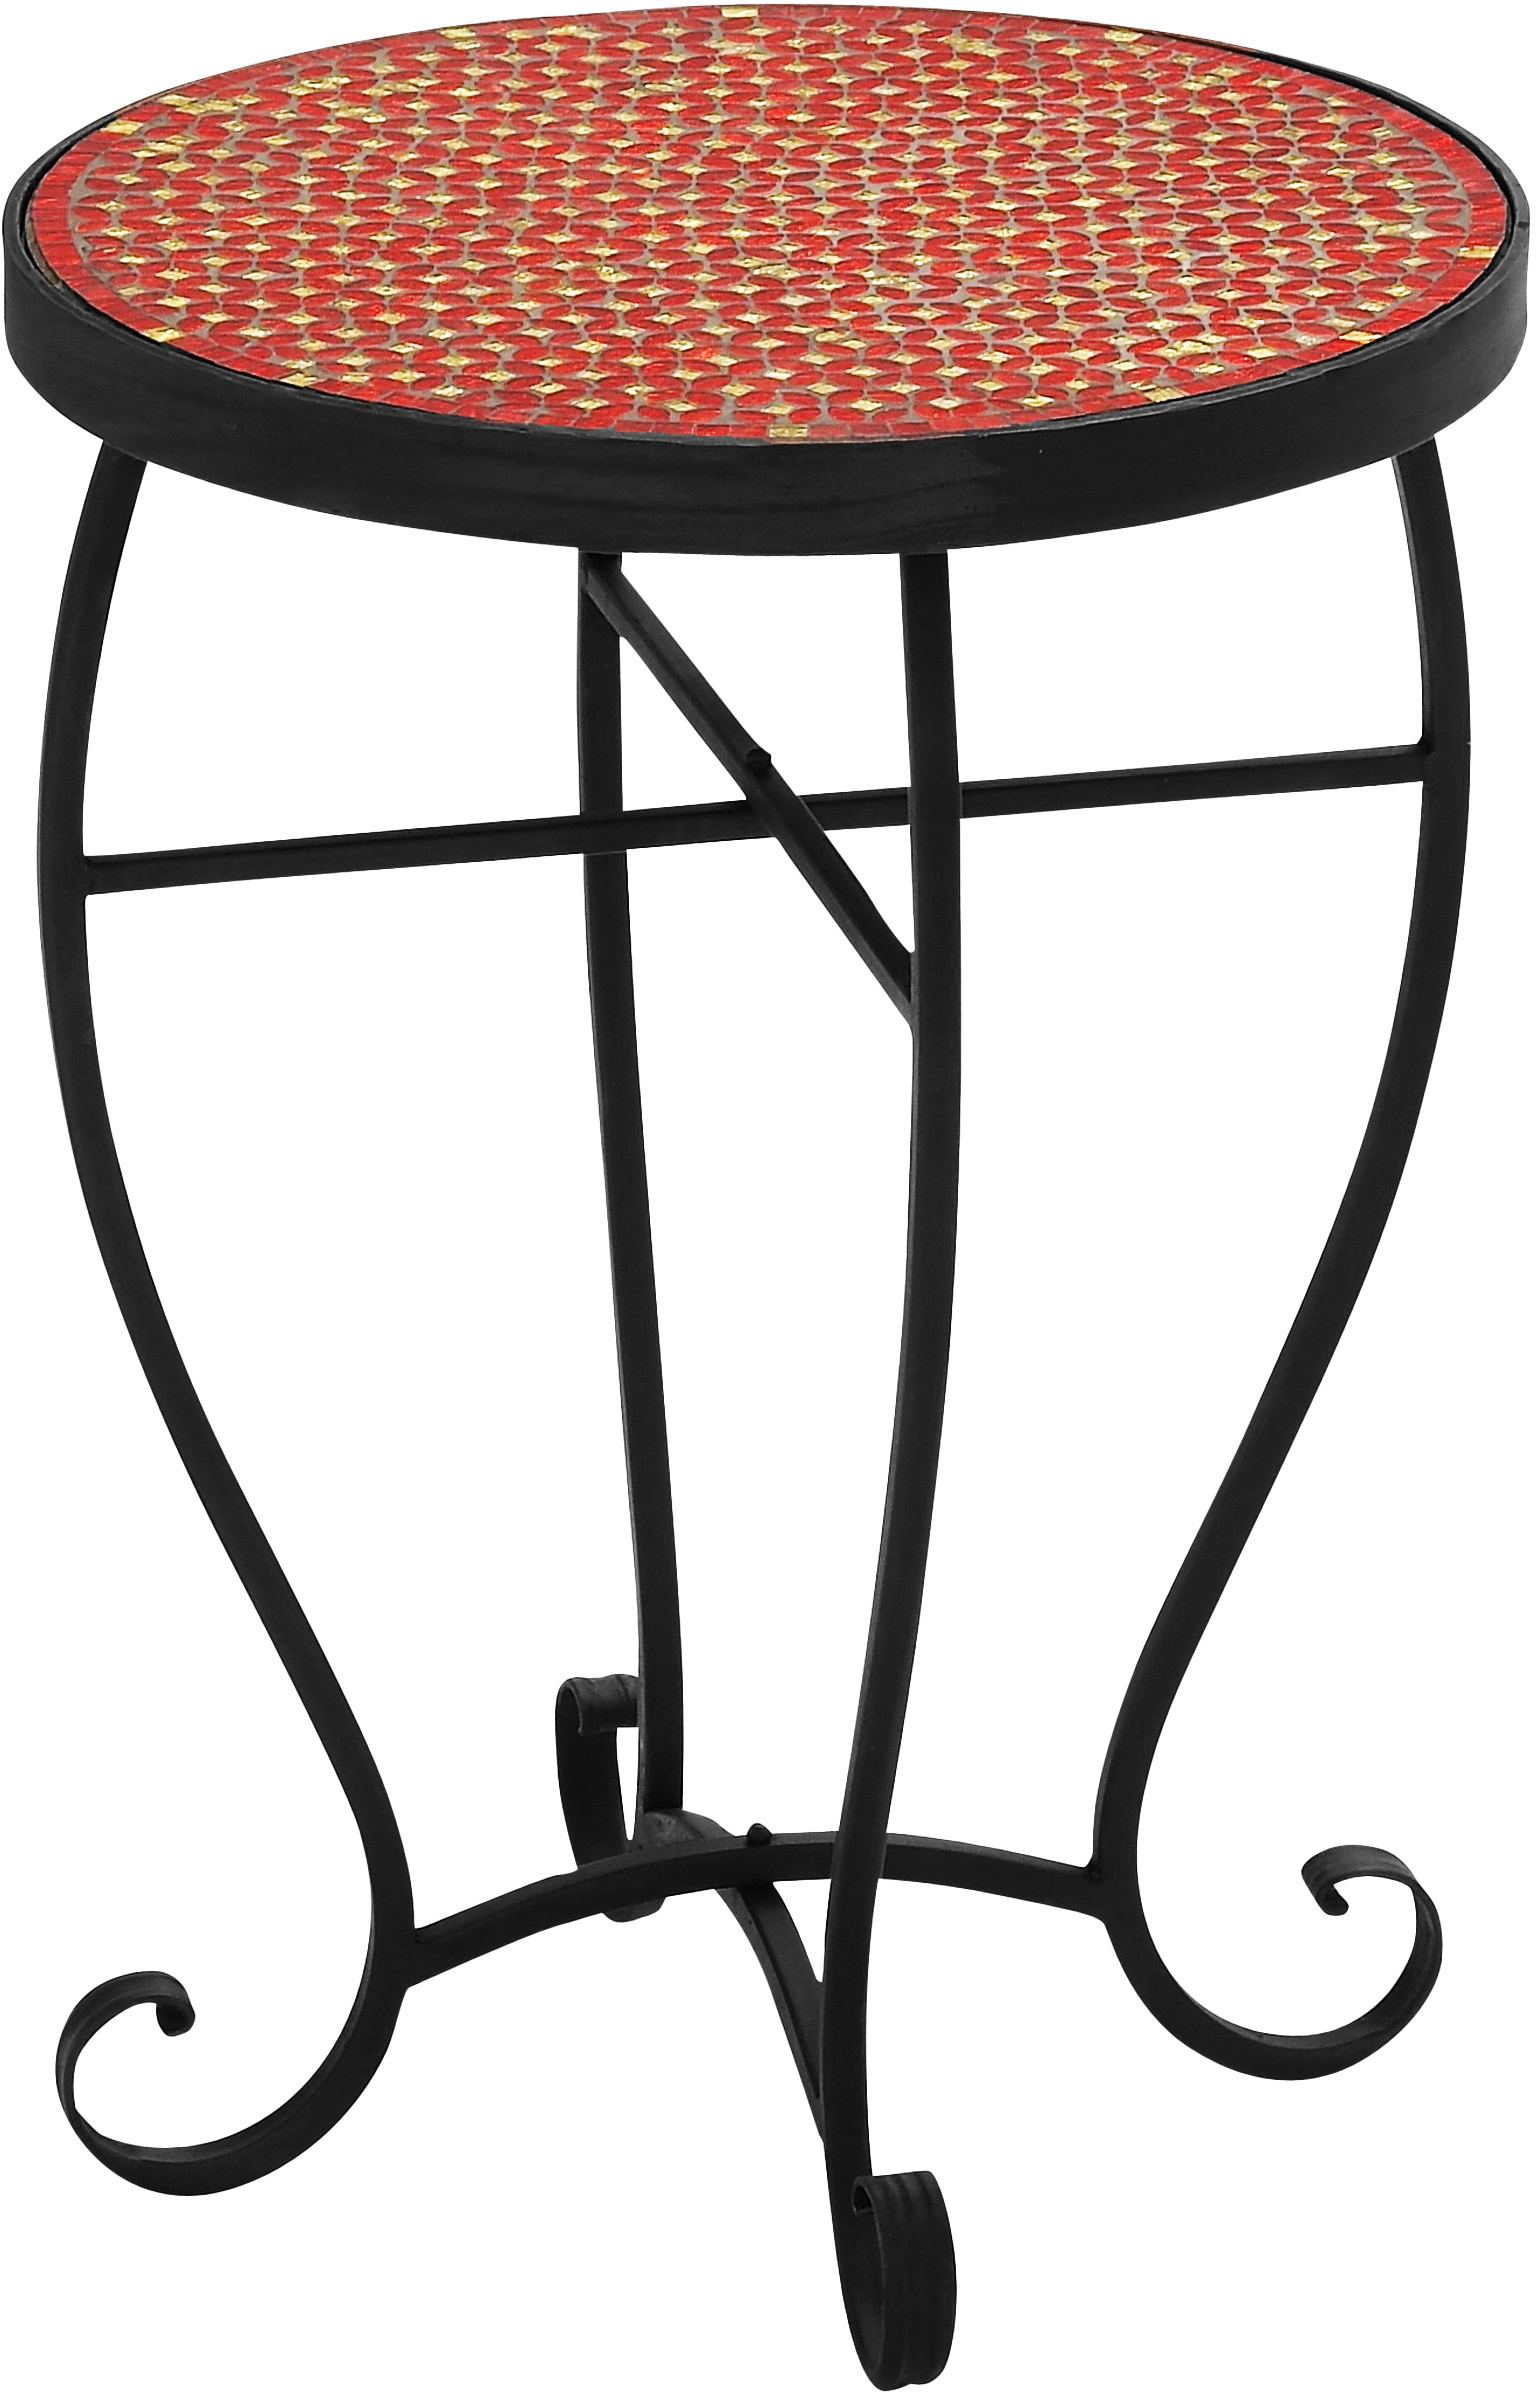 outdoor accent table mosaic red round side indoor end chrome wicker patio office furniture portland coffee tables toronto tall pub and chairs floor transition strips metal teal